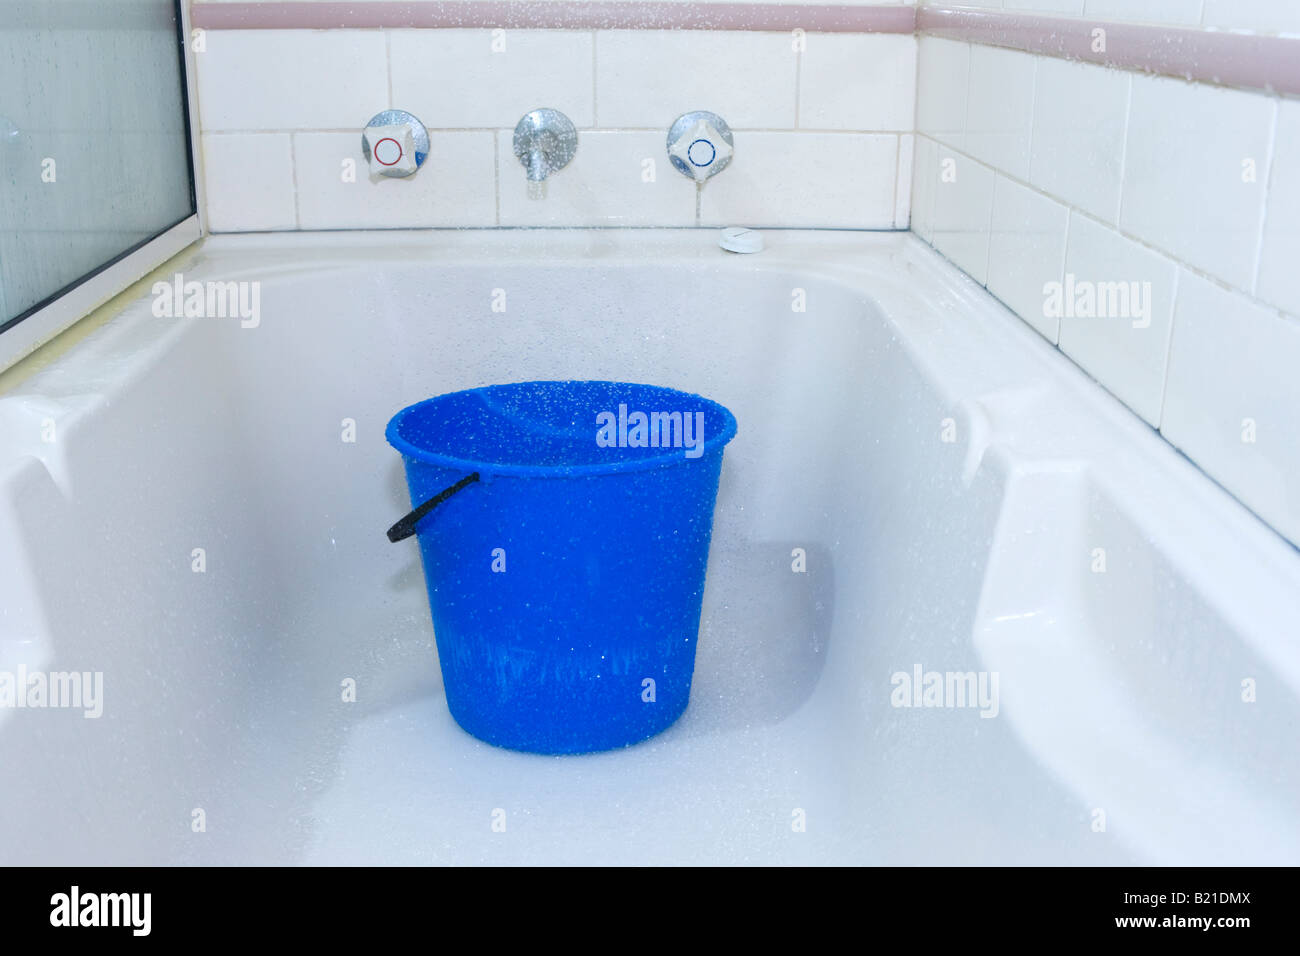 A bucket placed in a bath under the shower to conserve water so it ...